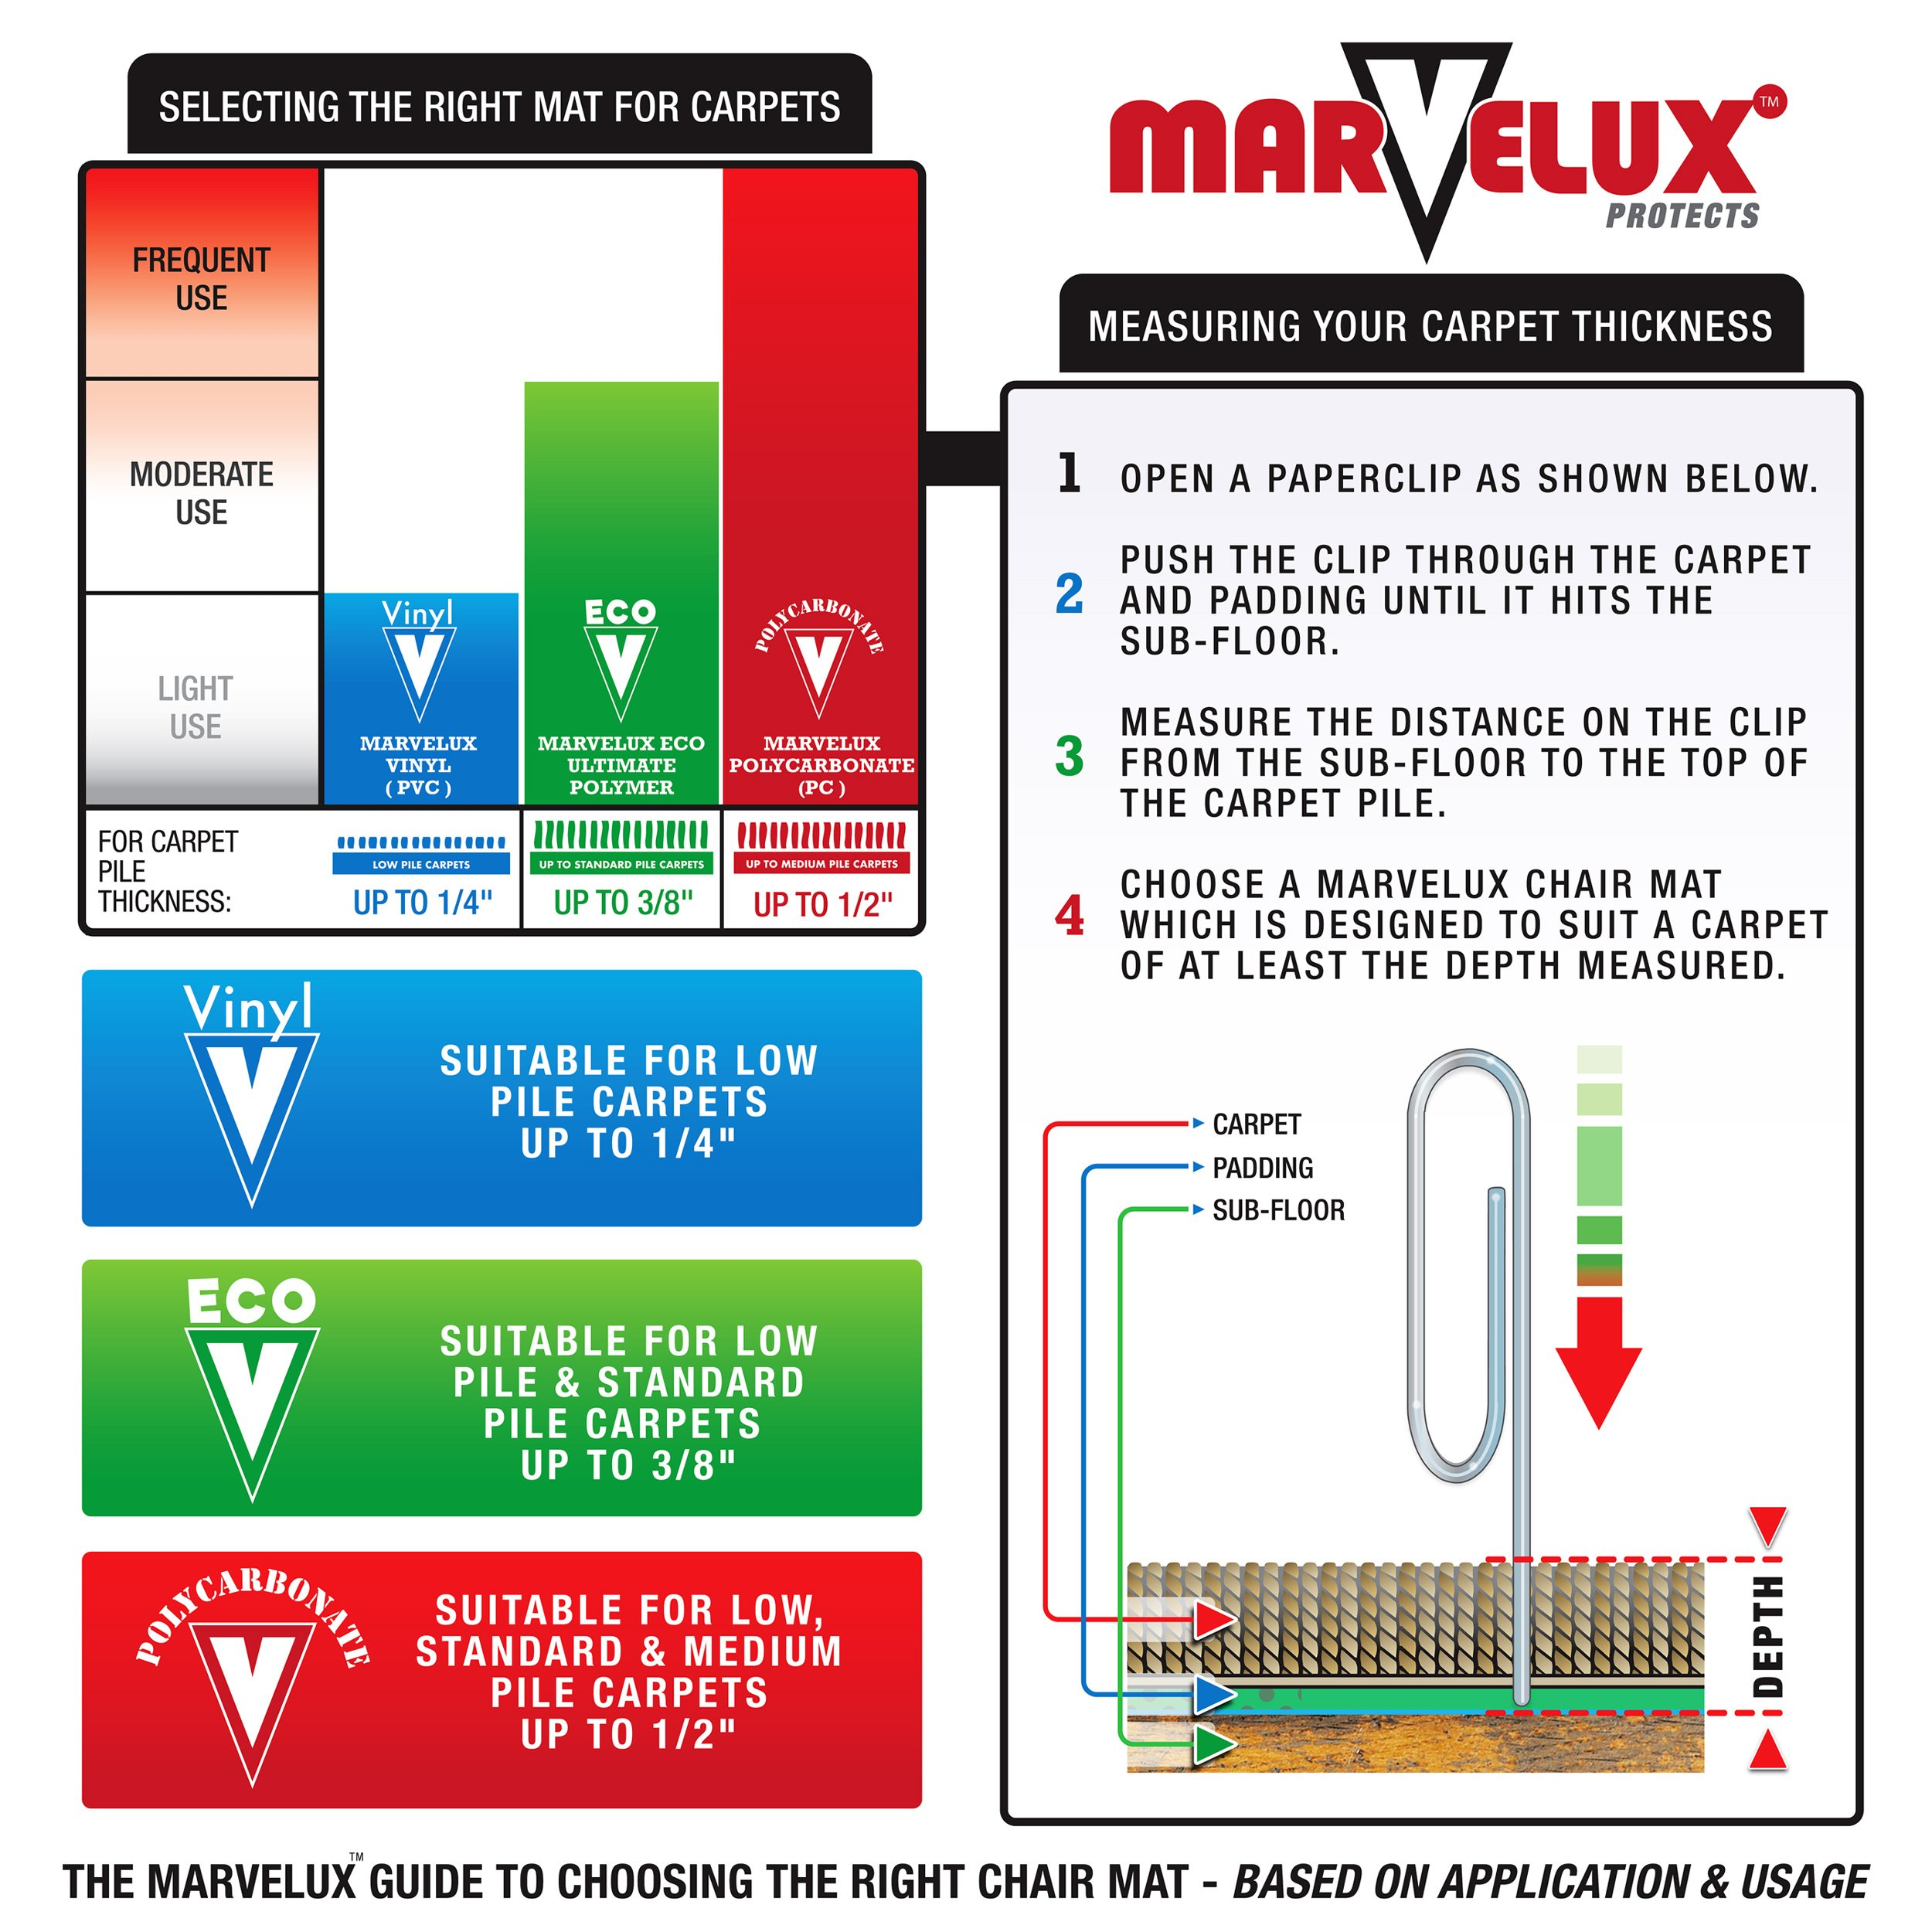 Marvelux 48'' x 60'' ECO (Enhanced Polymer) Rectangular Chair Mat for Low and Standard Pile Carpets | Transparent Carpet Protector | Multiple Sizes by Marvelux (Image #5)